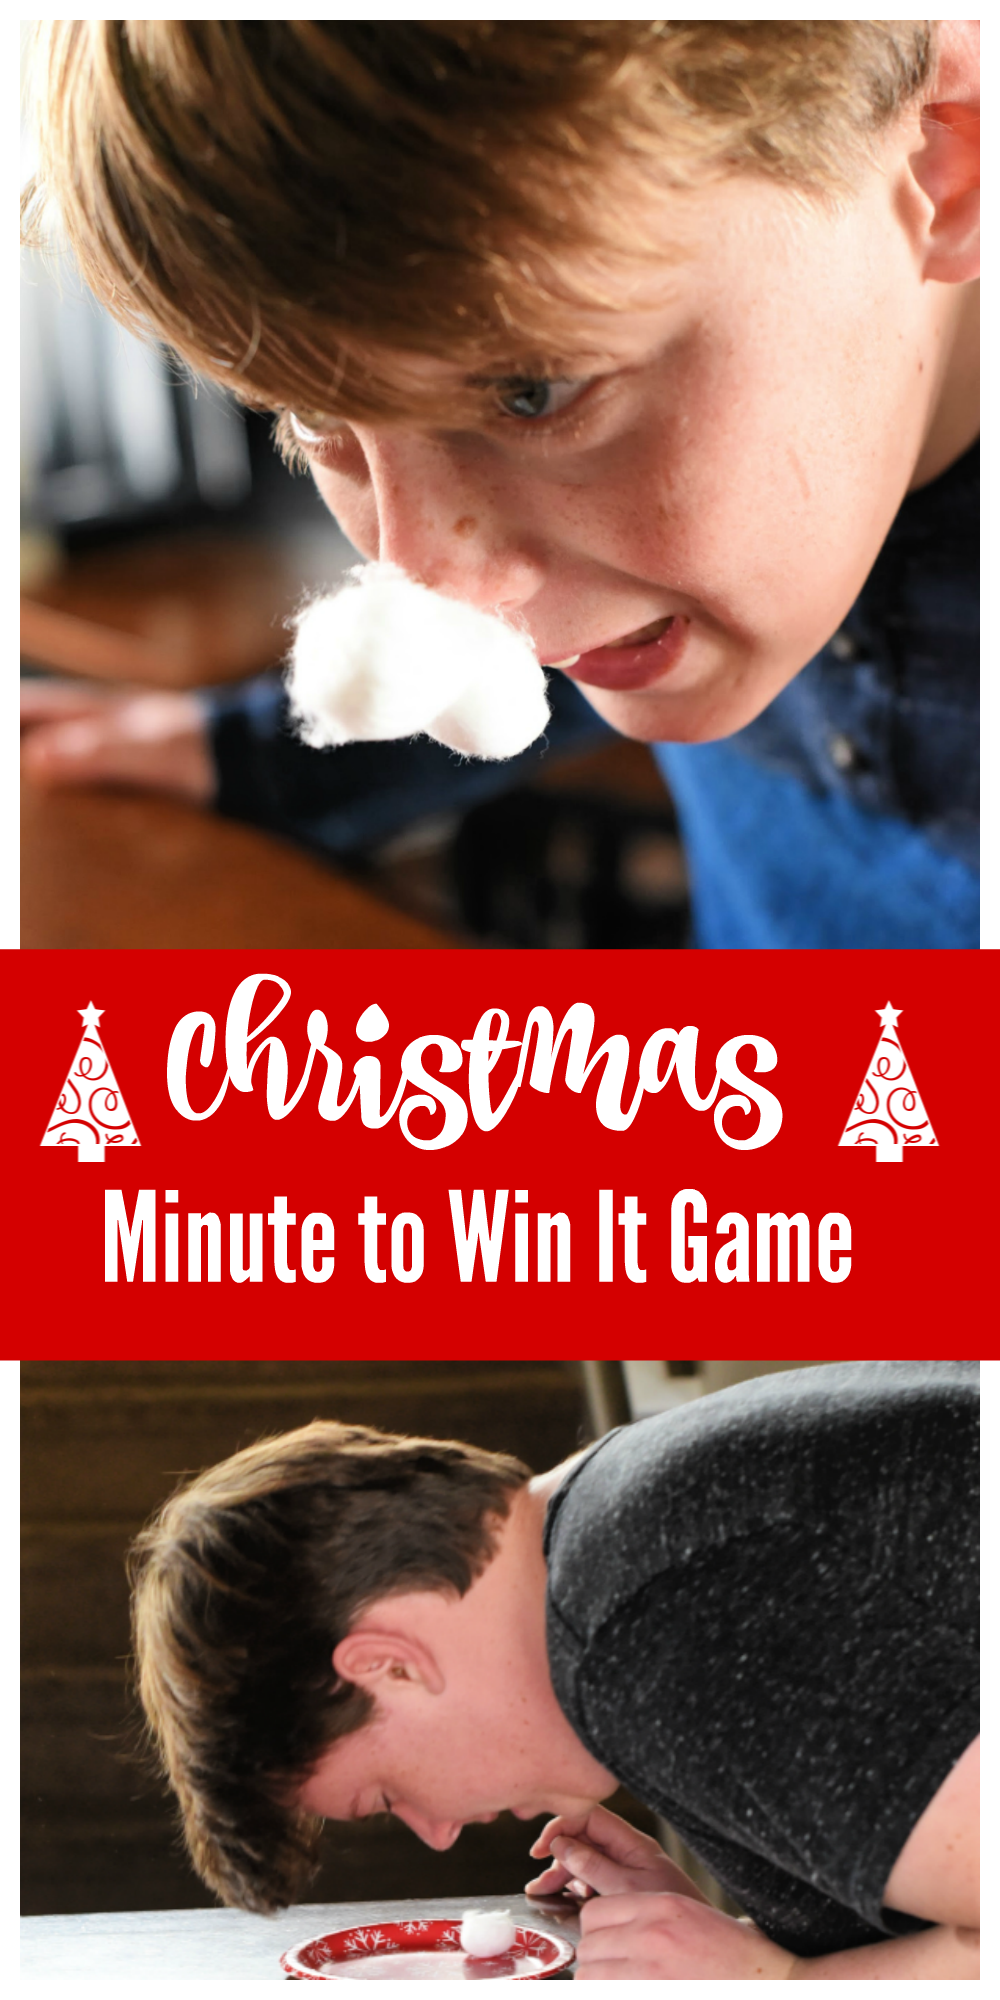 Christmas Minute to Win It Games to Play-Reindeer Races Great for Christmas Parties #christmas #christmasgames #christmasparty